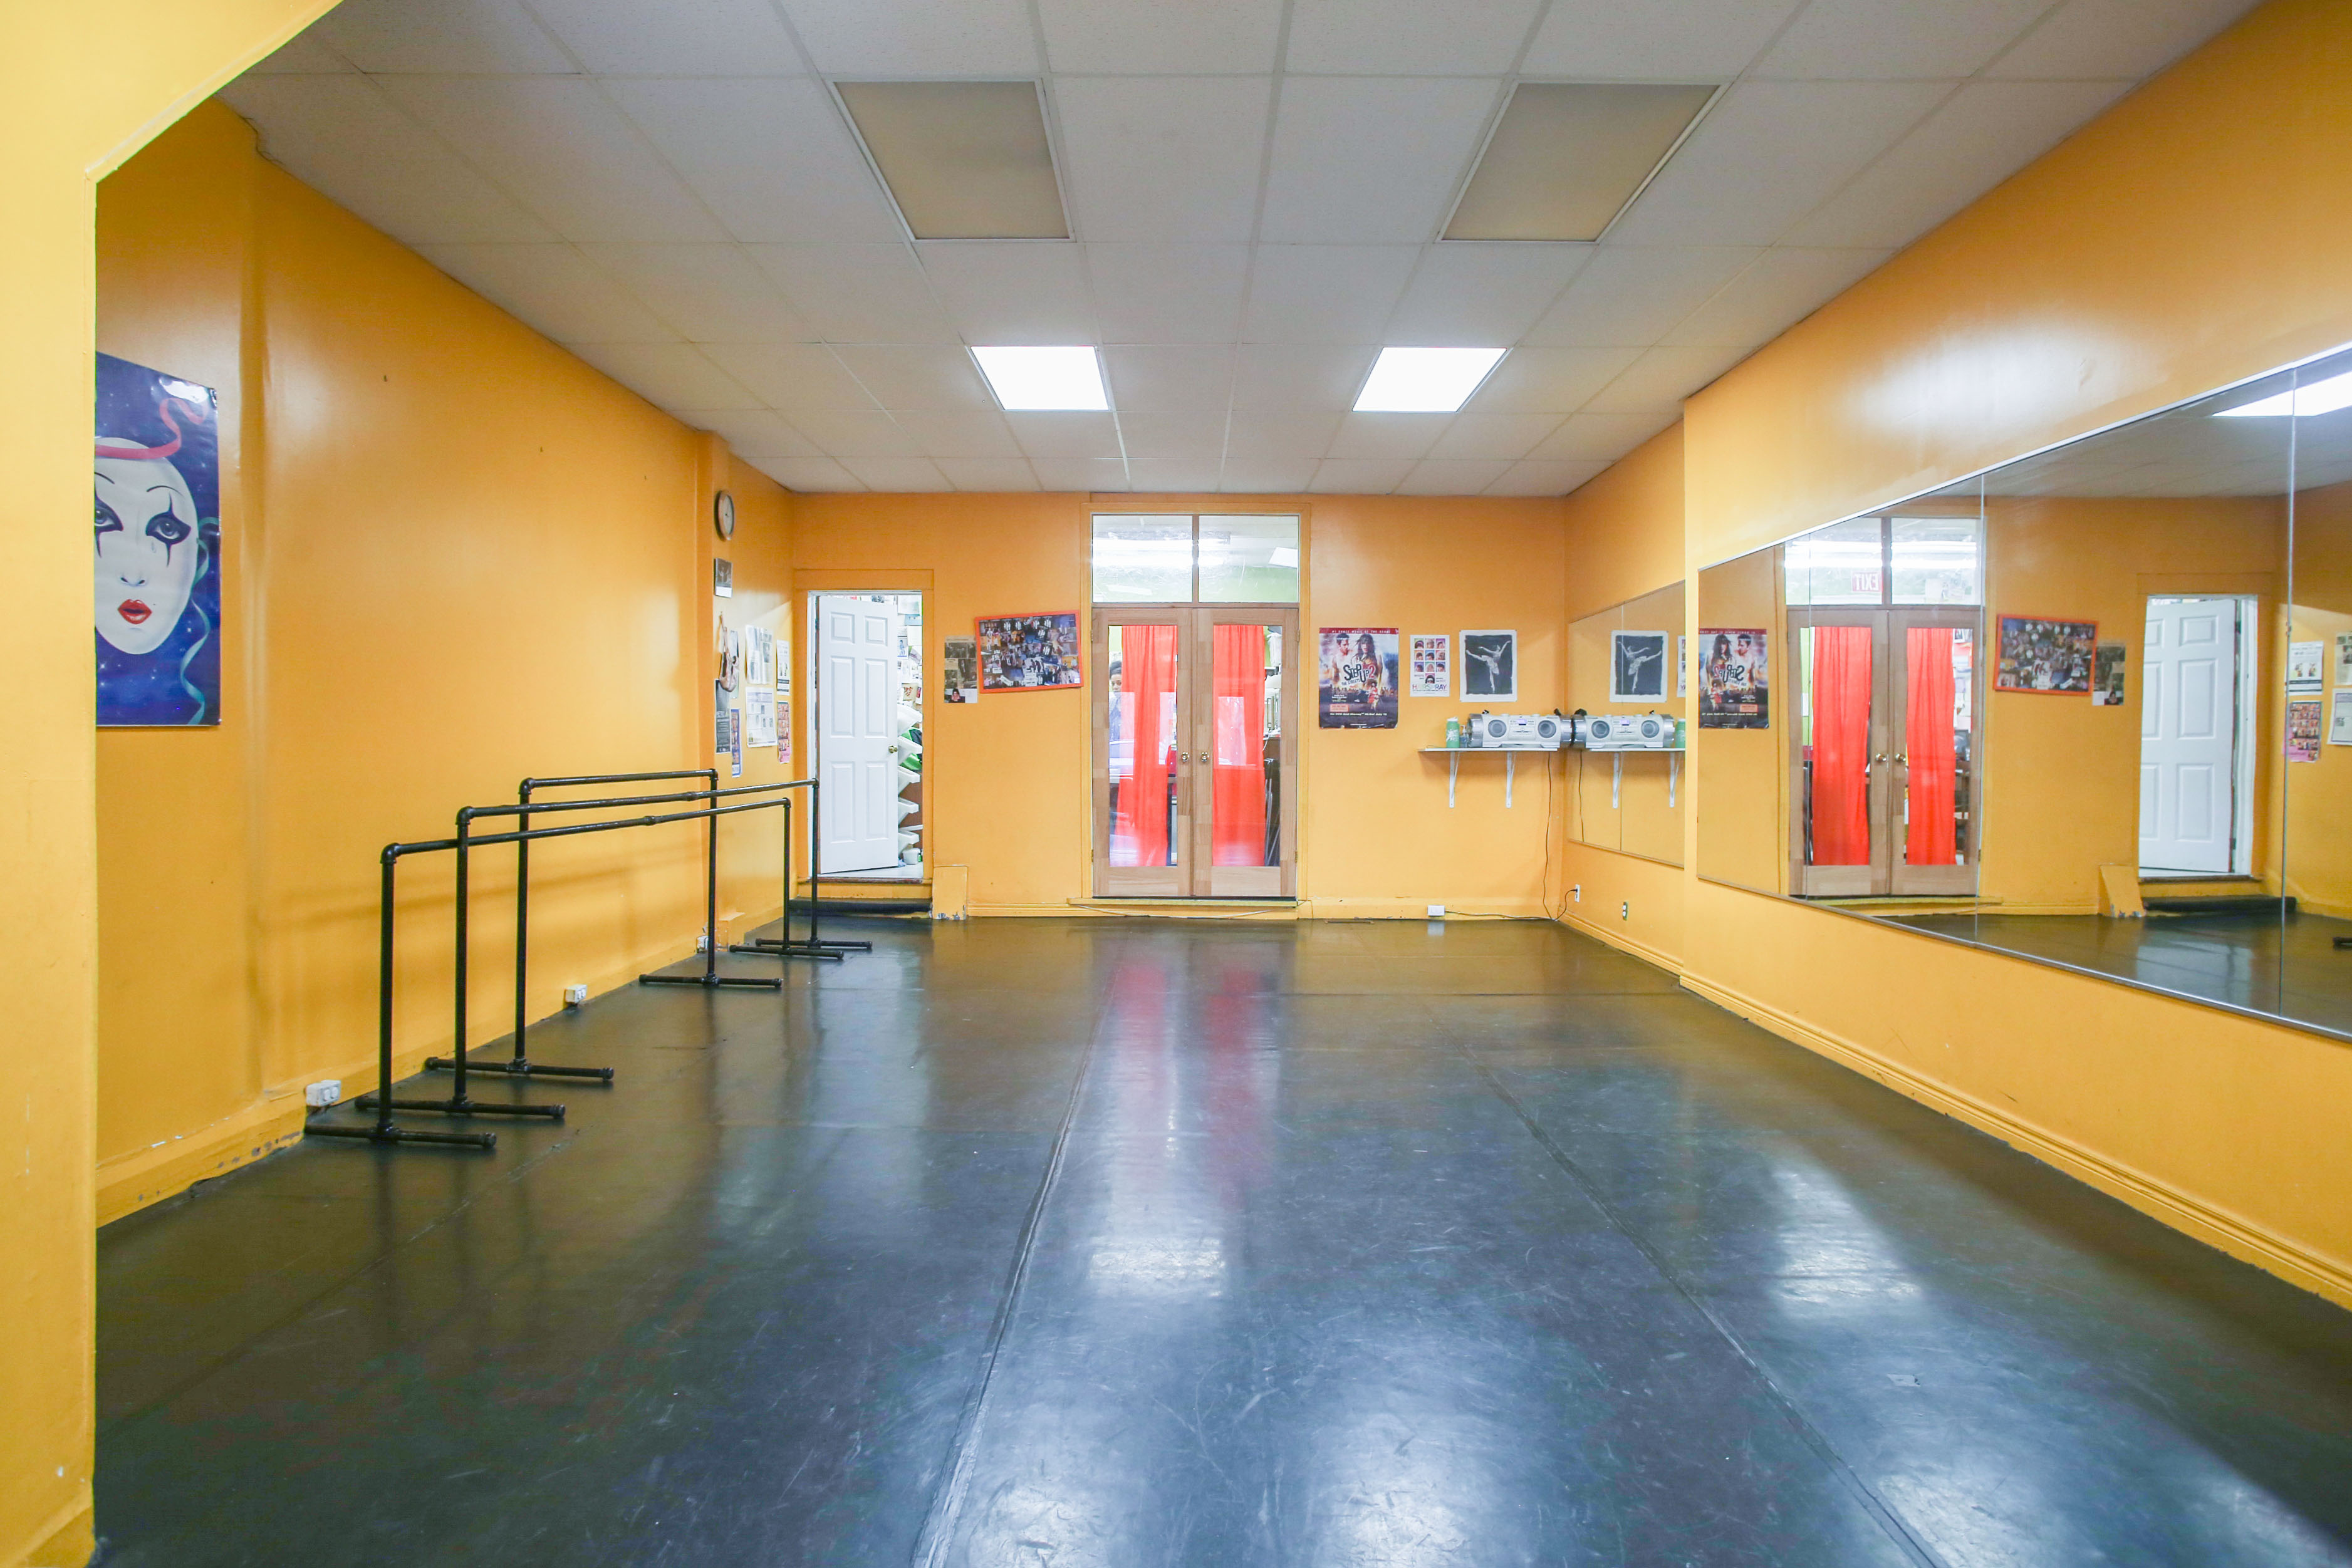 Interior Photographer For Dance Studio Rental Space On The